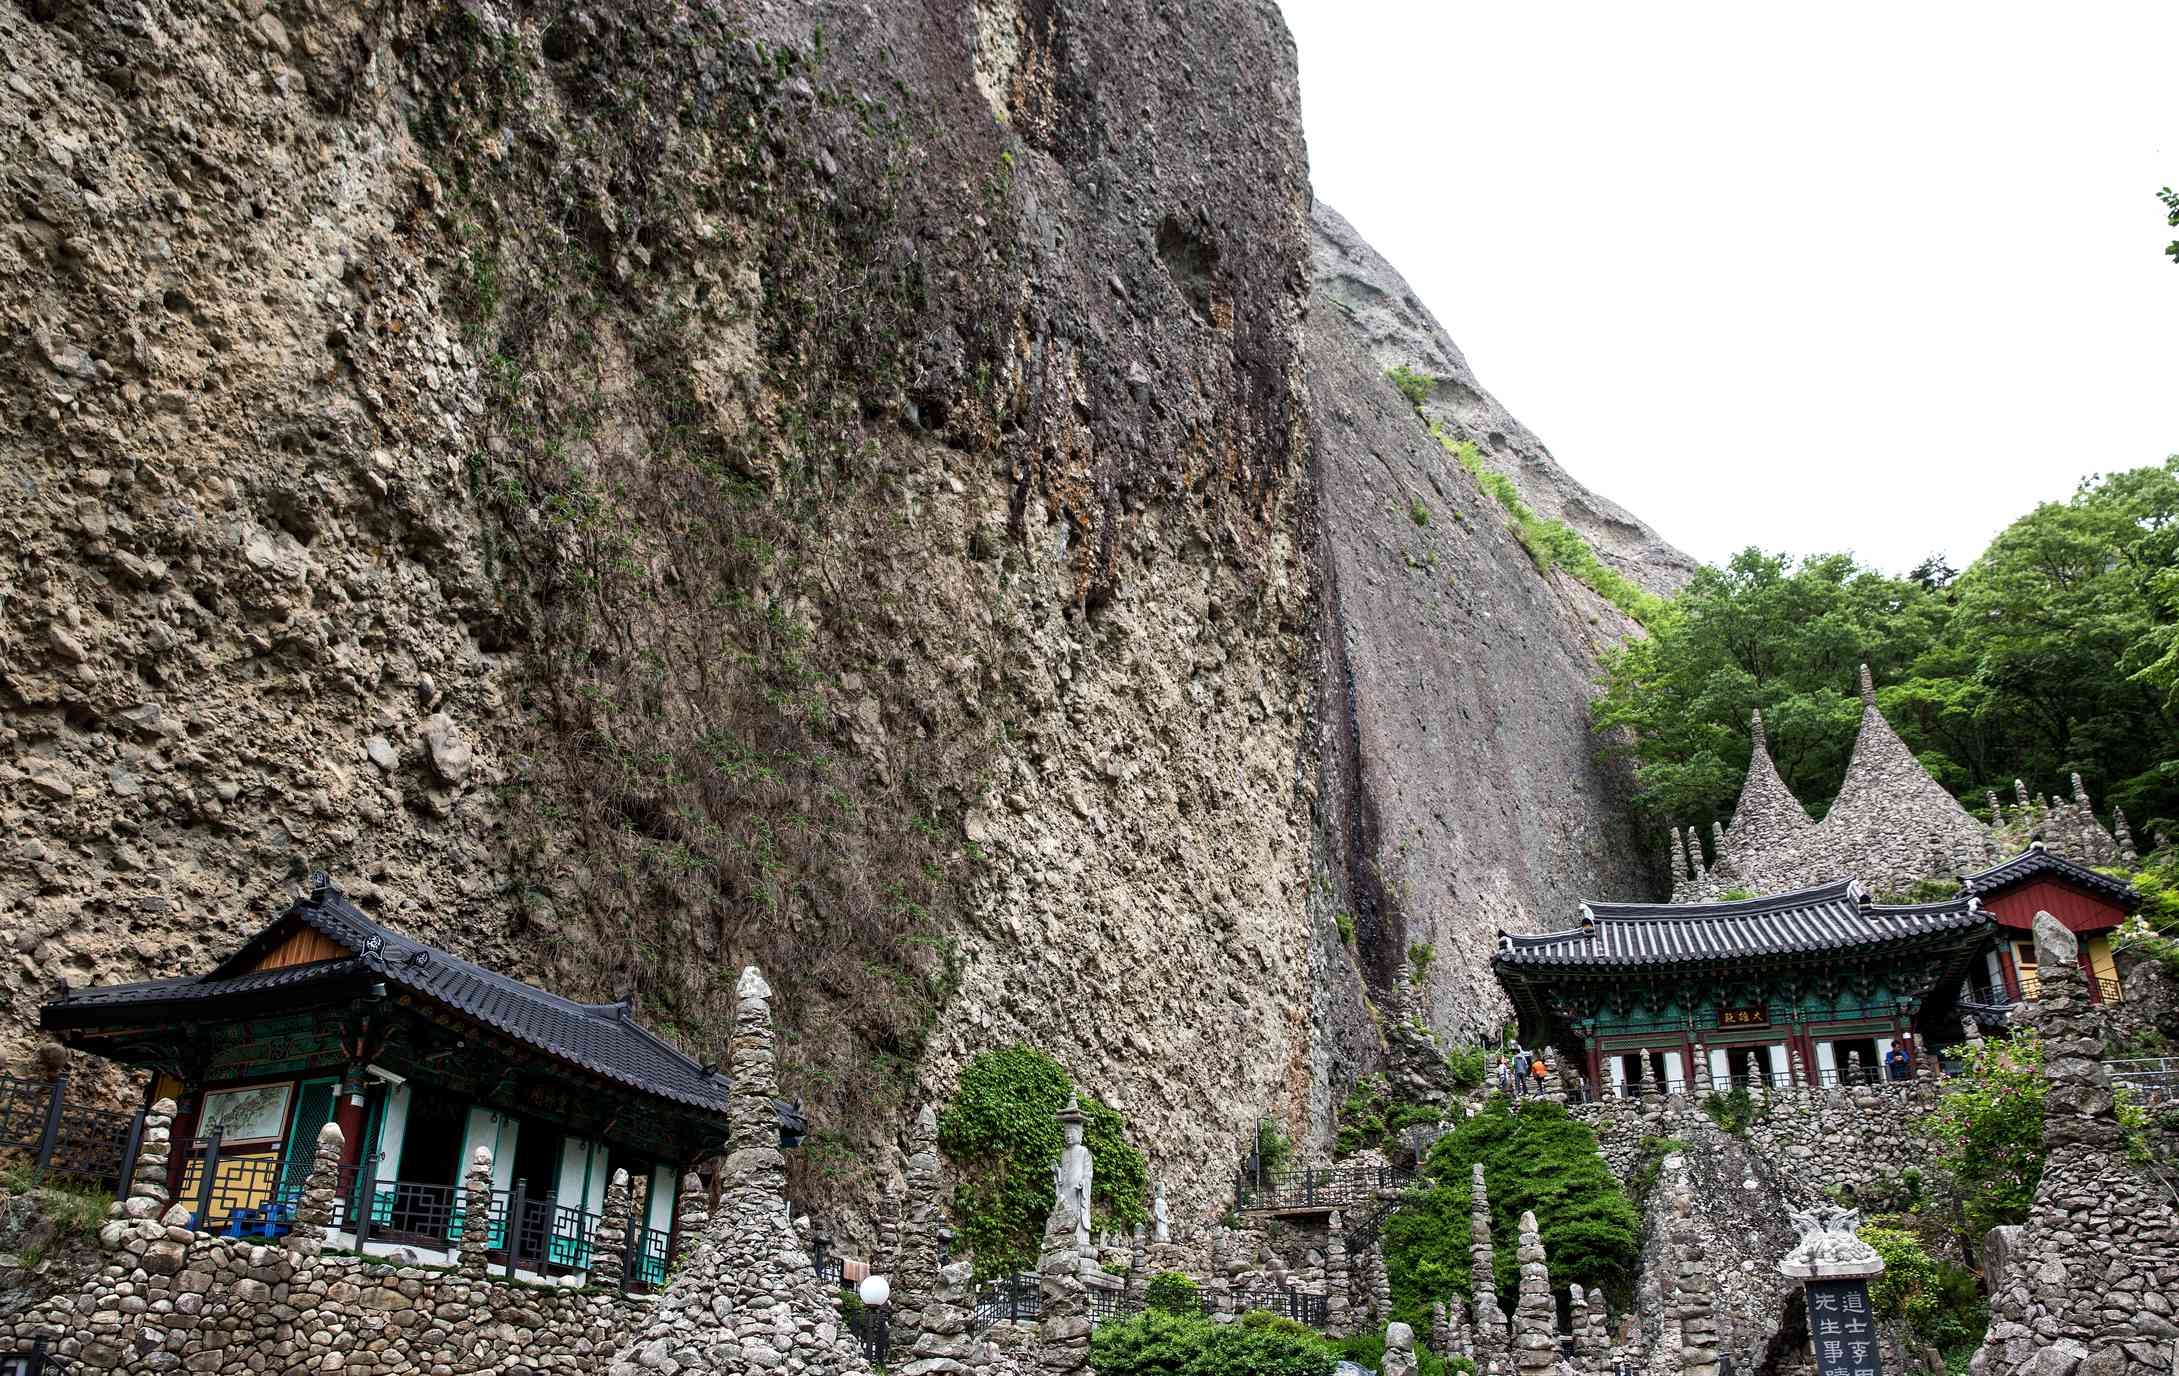 Mysterious rock formations at Tapsa Temple in South Korea